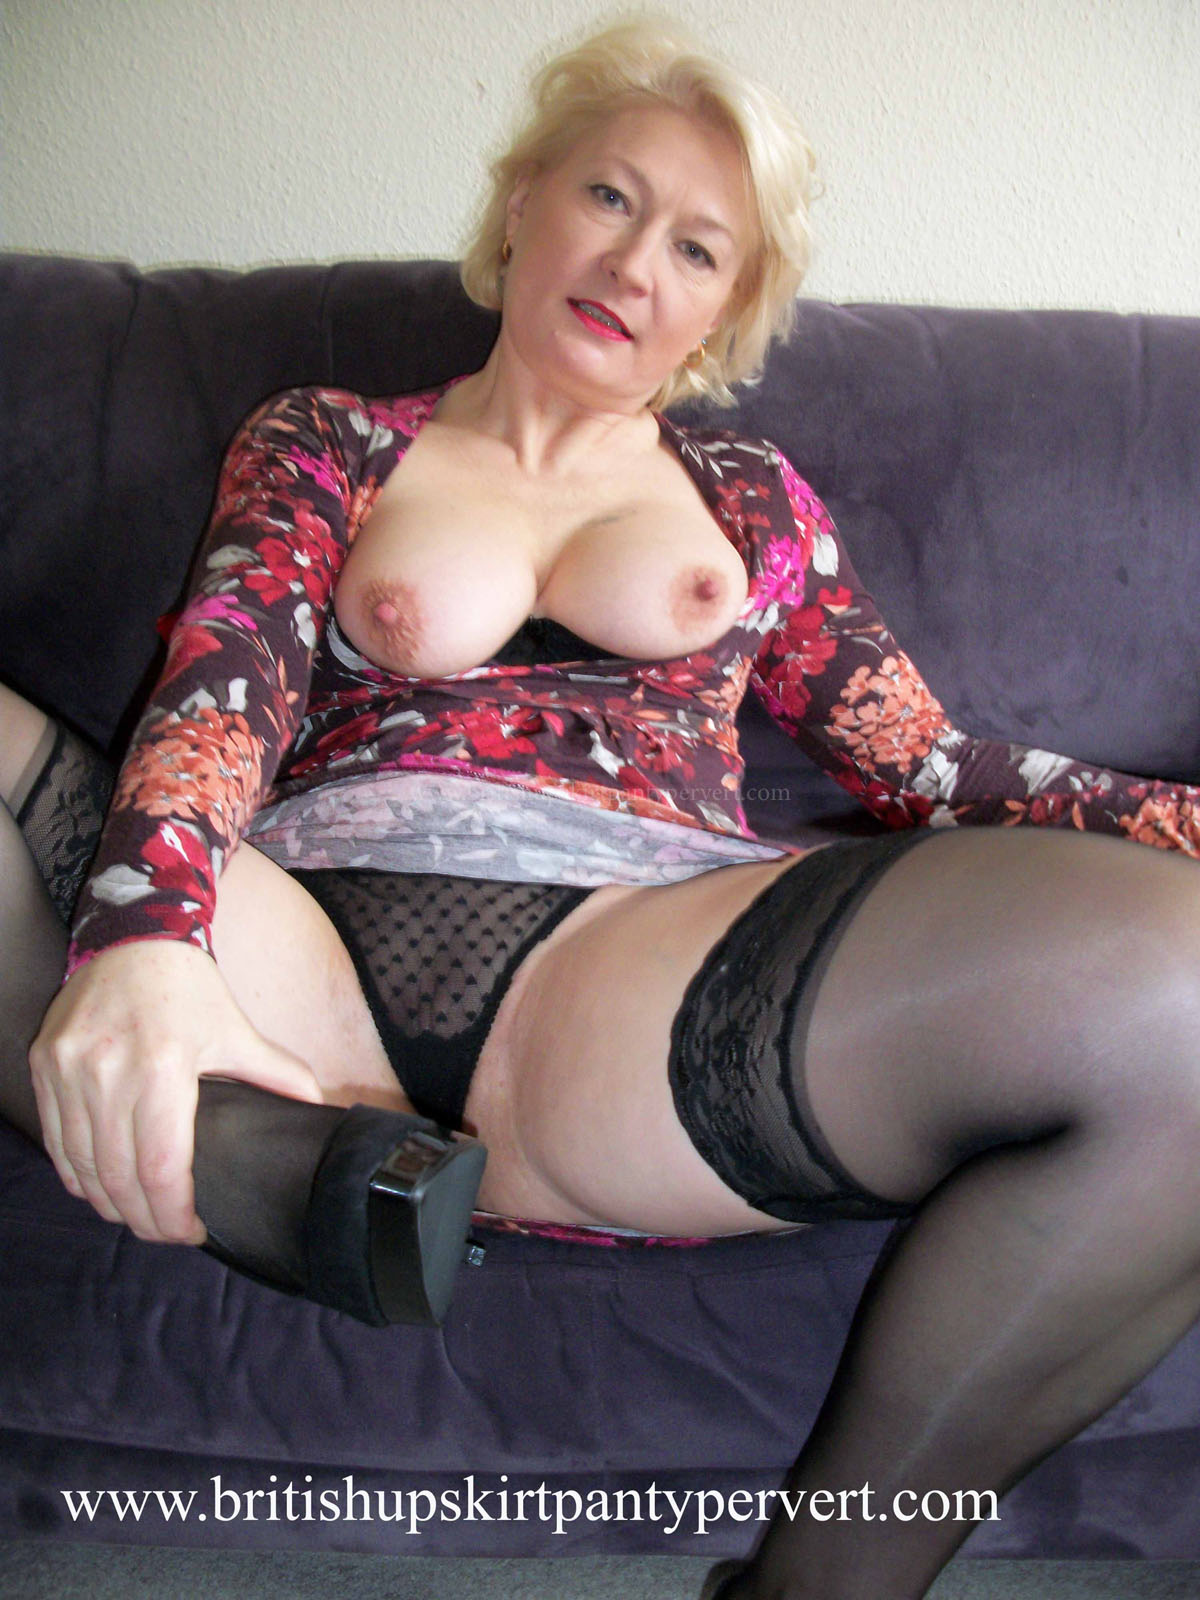 Upskirt British 121